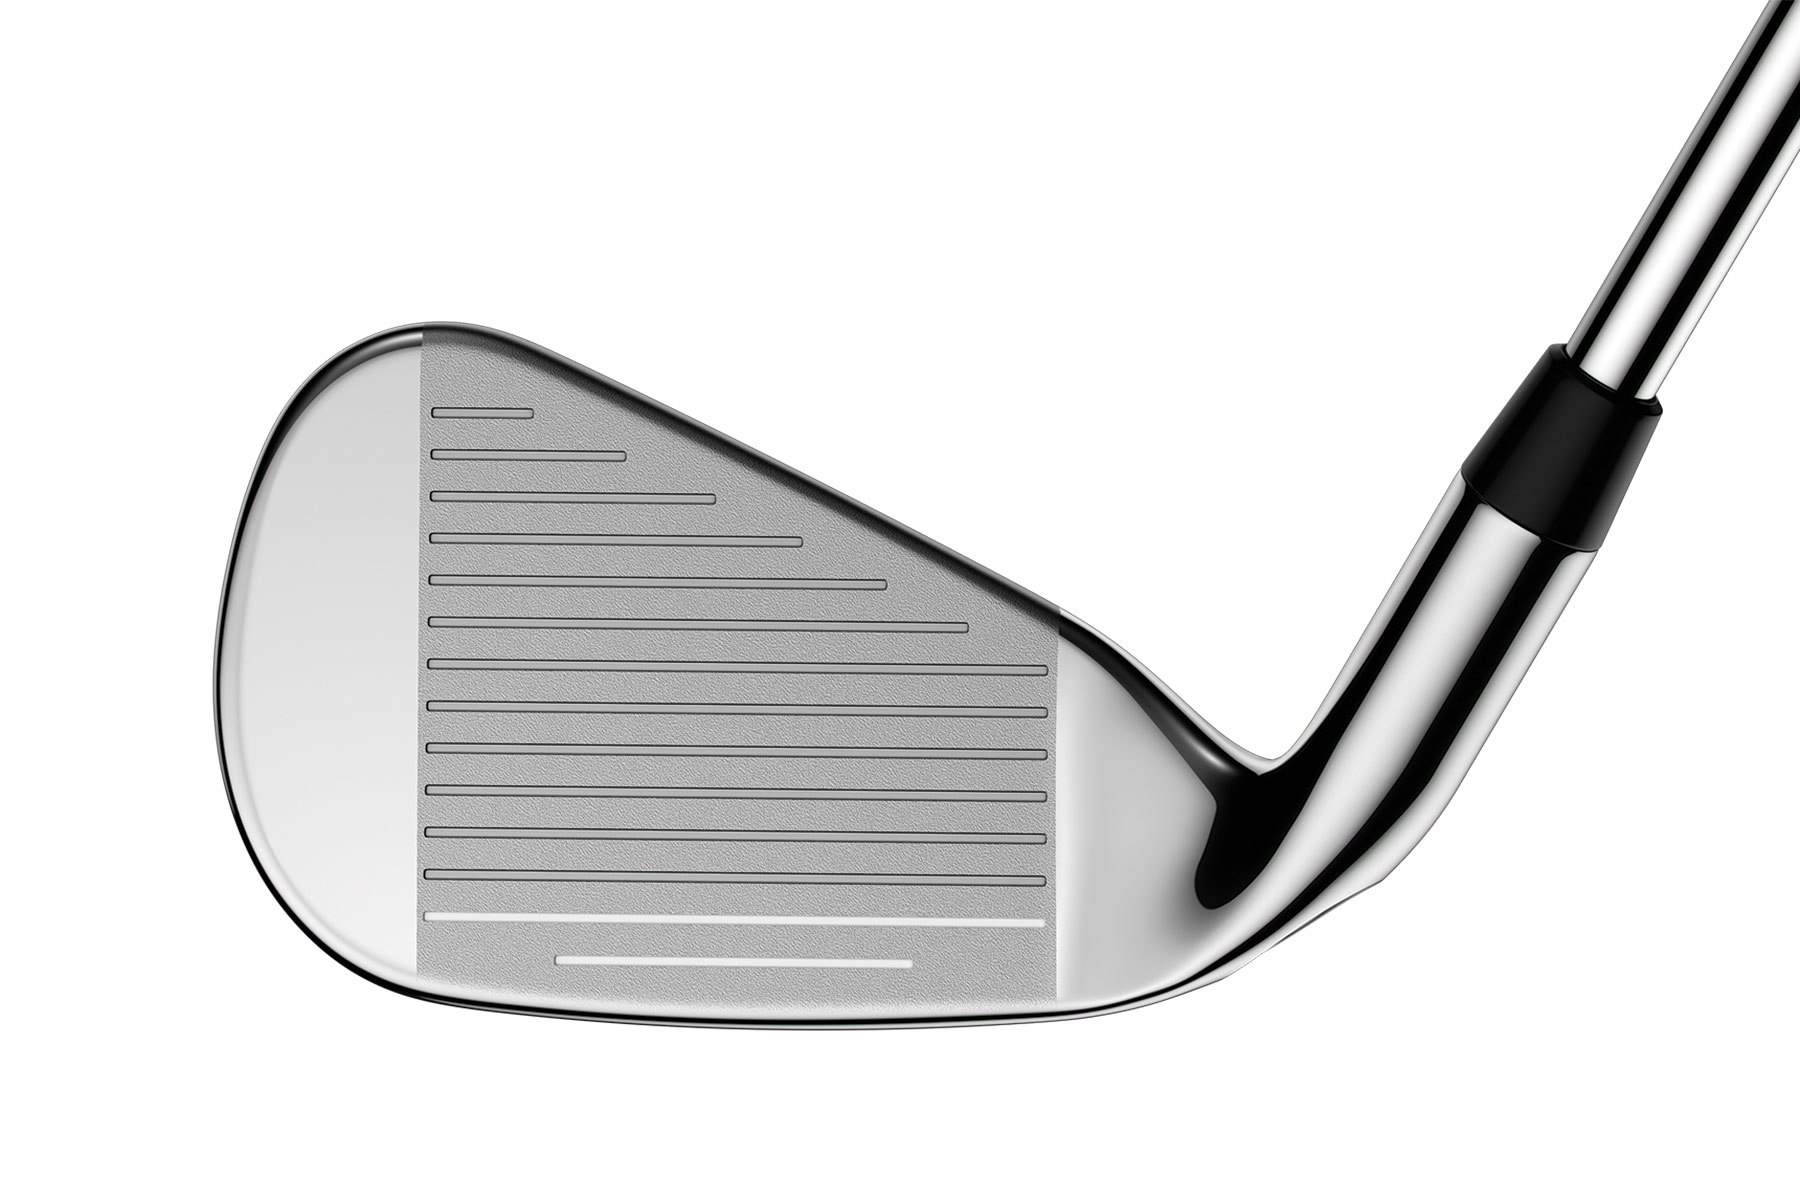 callaway golf steelhead xr graphite irons from american golf. Black Bedroom Furniture Sets. Home Design Ideas